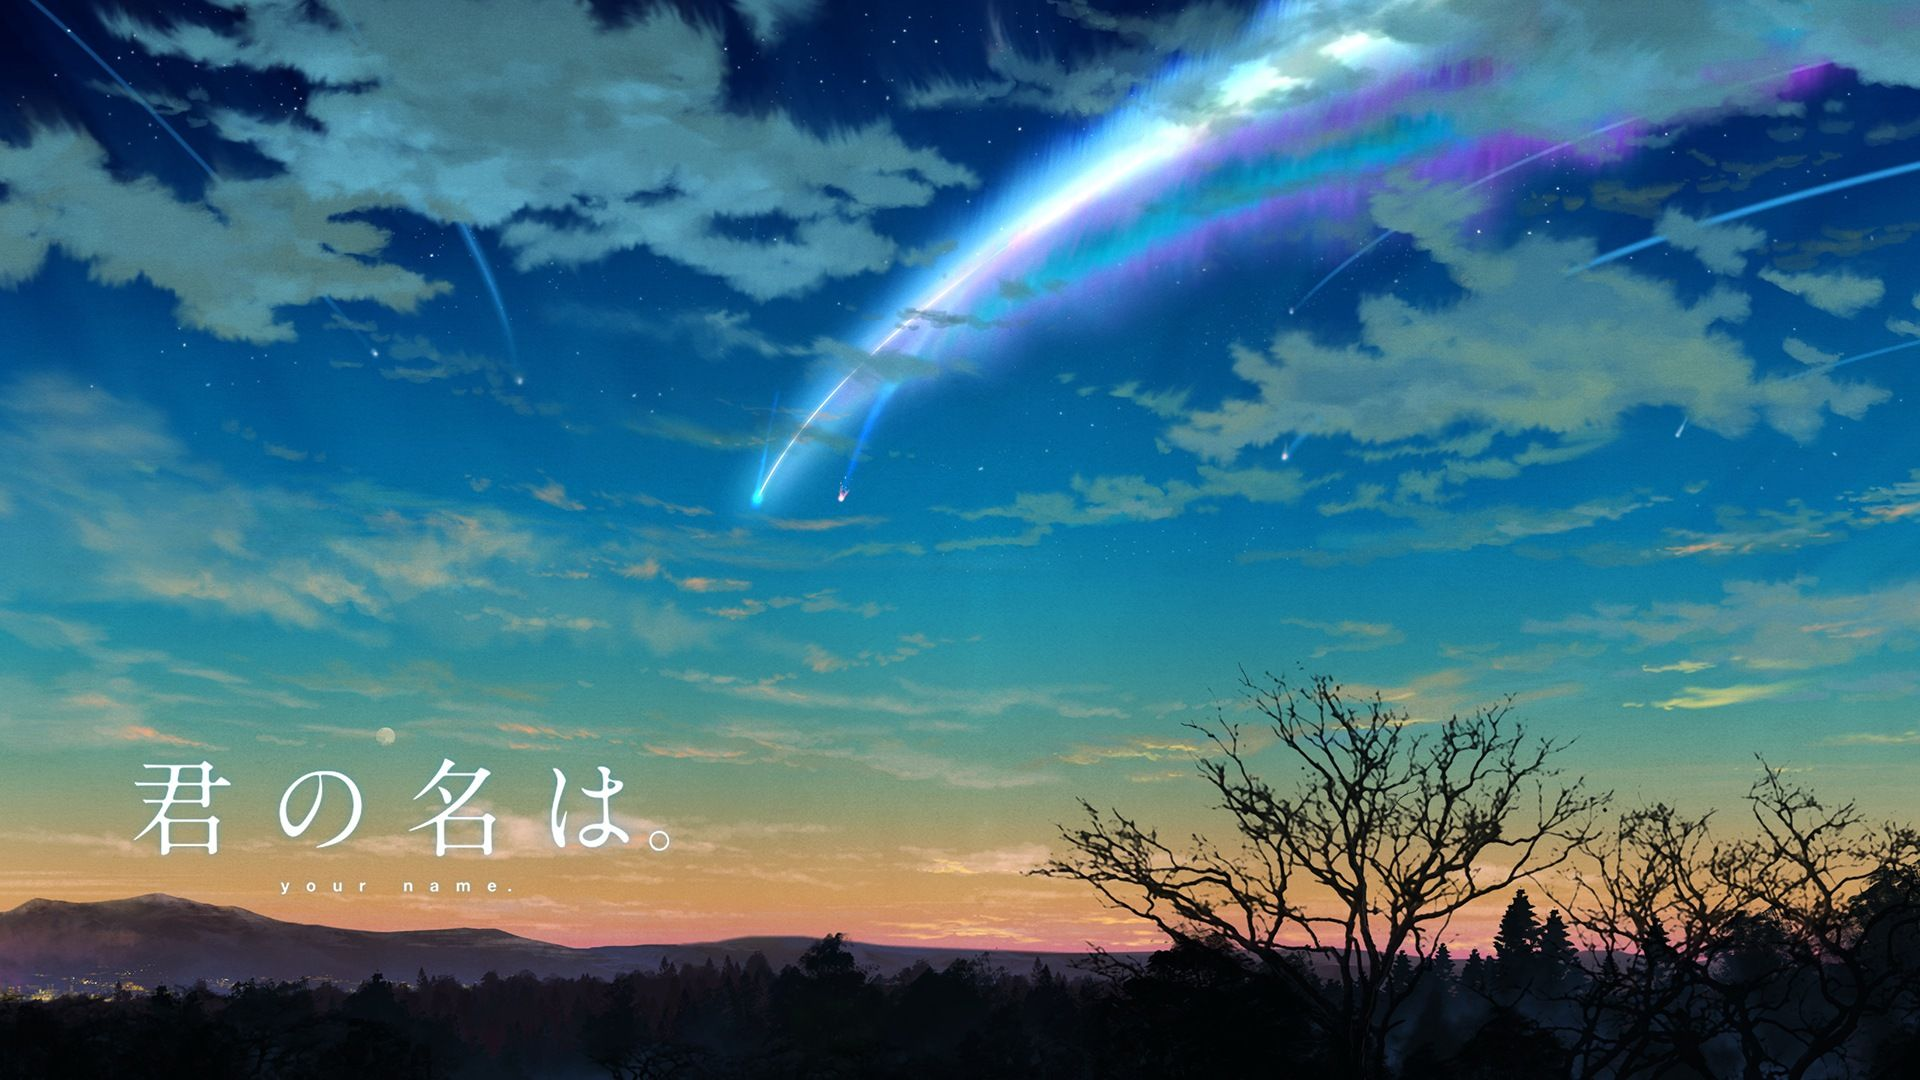 Kimi No Na Wa Your Name Anime Sky Scenery Comet Clouds Wallpaper